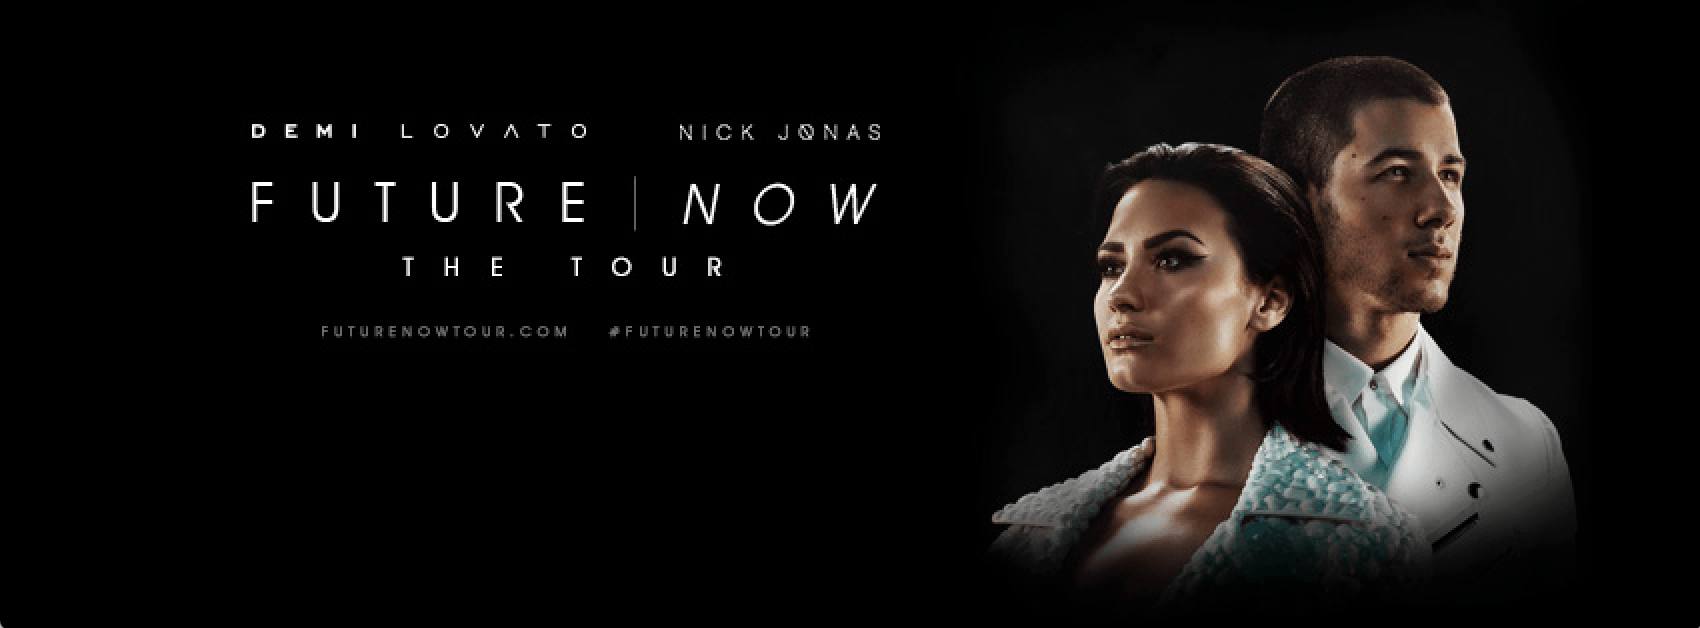 Demi lovato nick jonas future now the tour rogers arena demi lovato nick jonas m4hsunfo